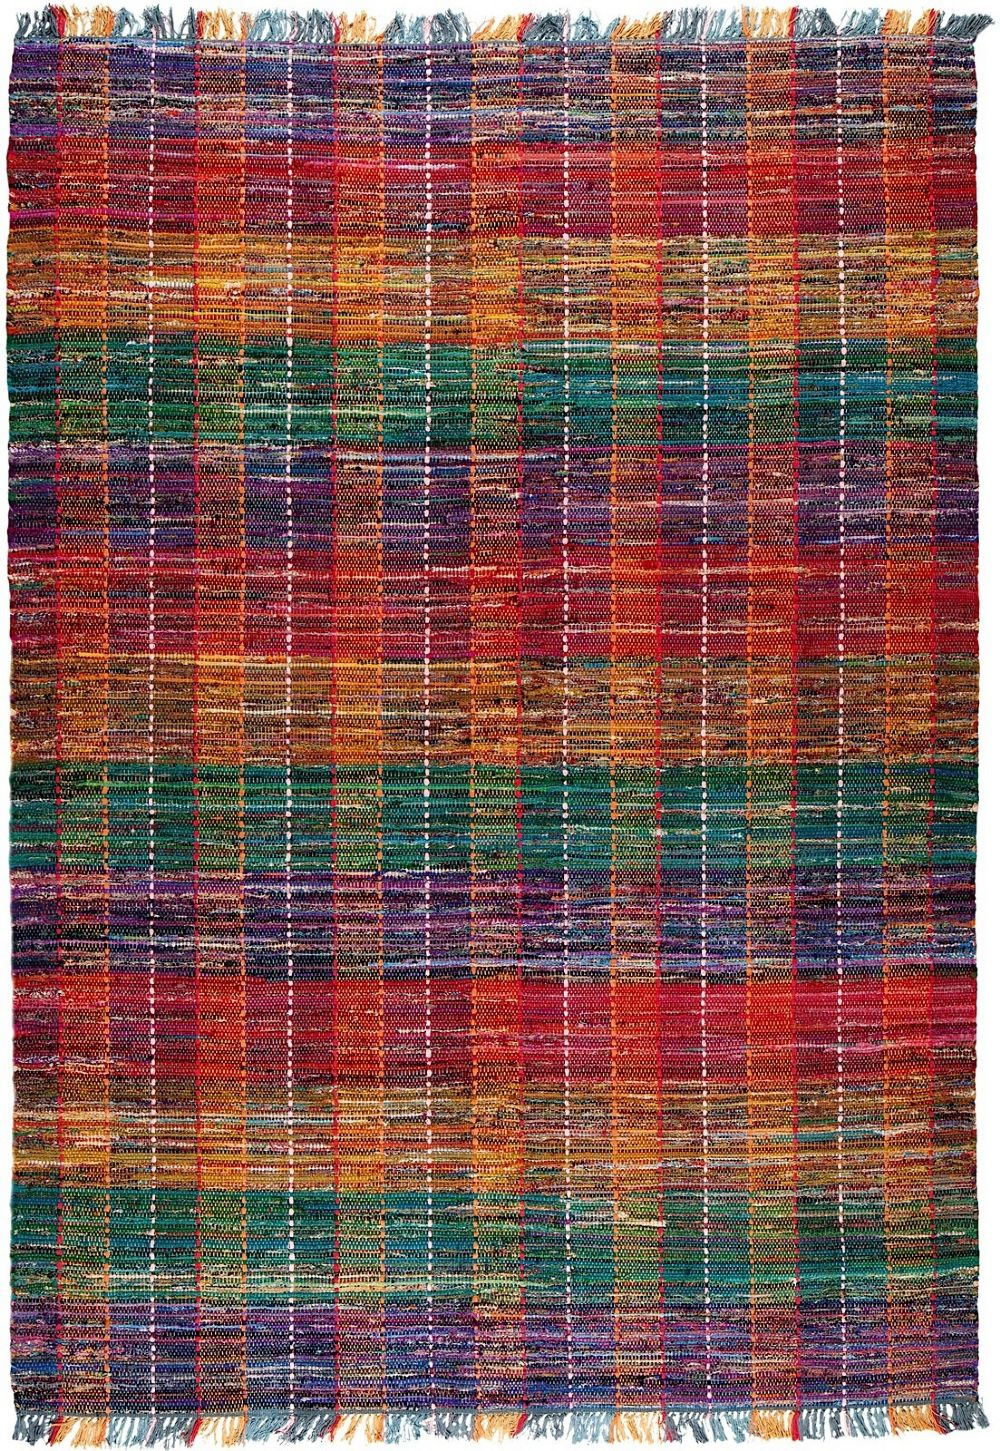 surya honolulu solid/striped area rug collection